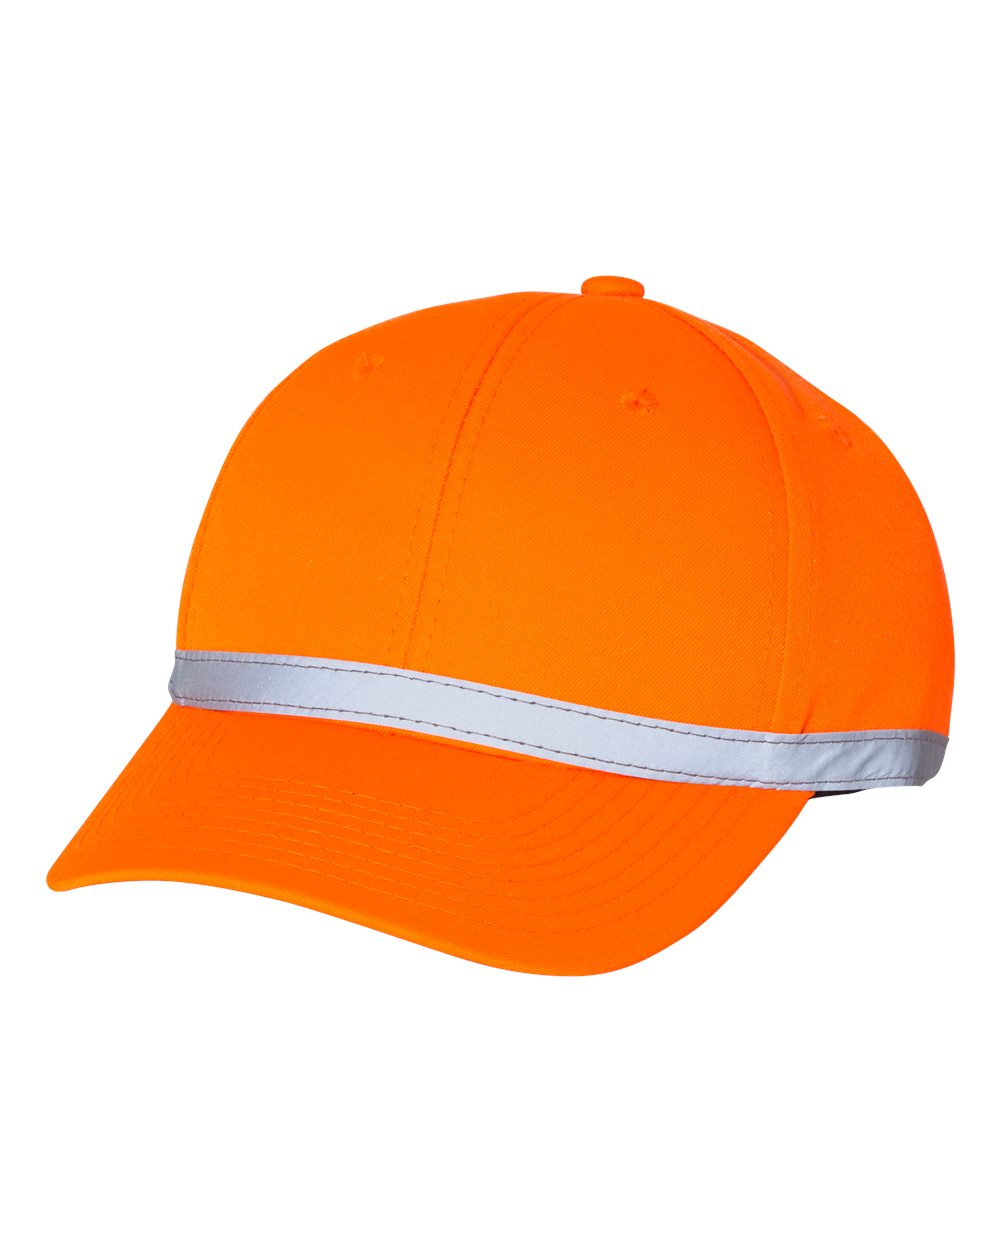 Outdoor Cap ANSI100 - ANSI Certified Cap